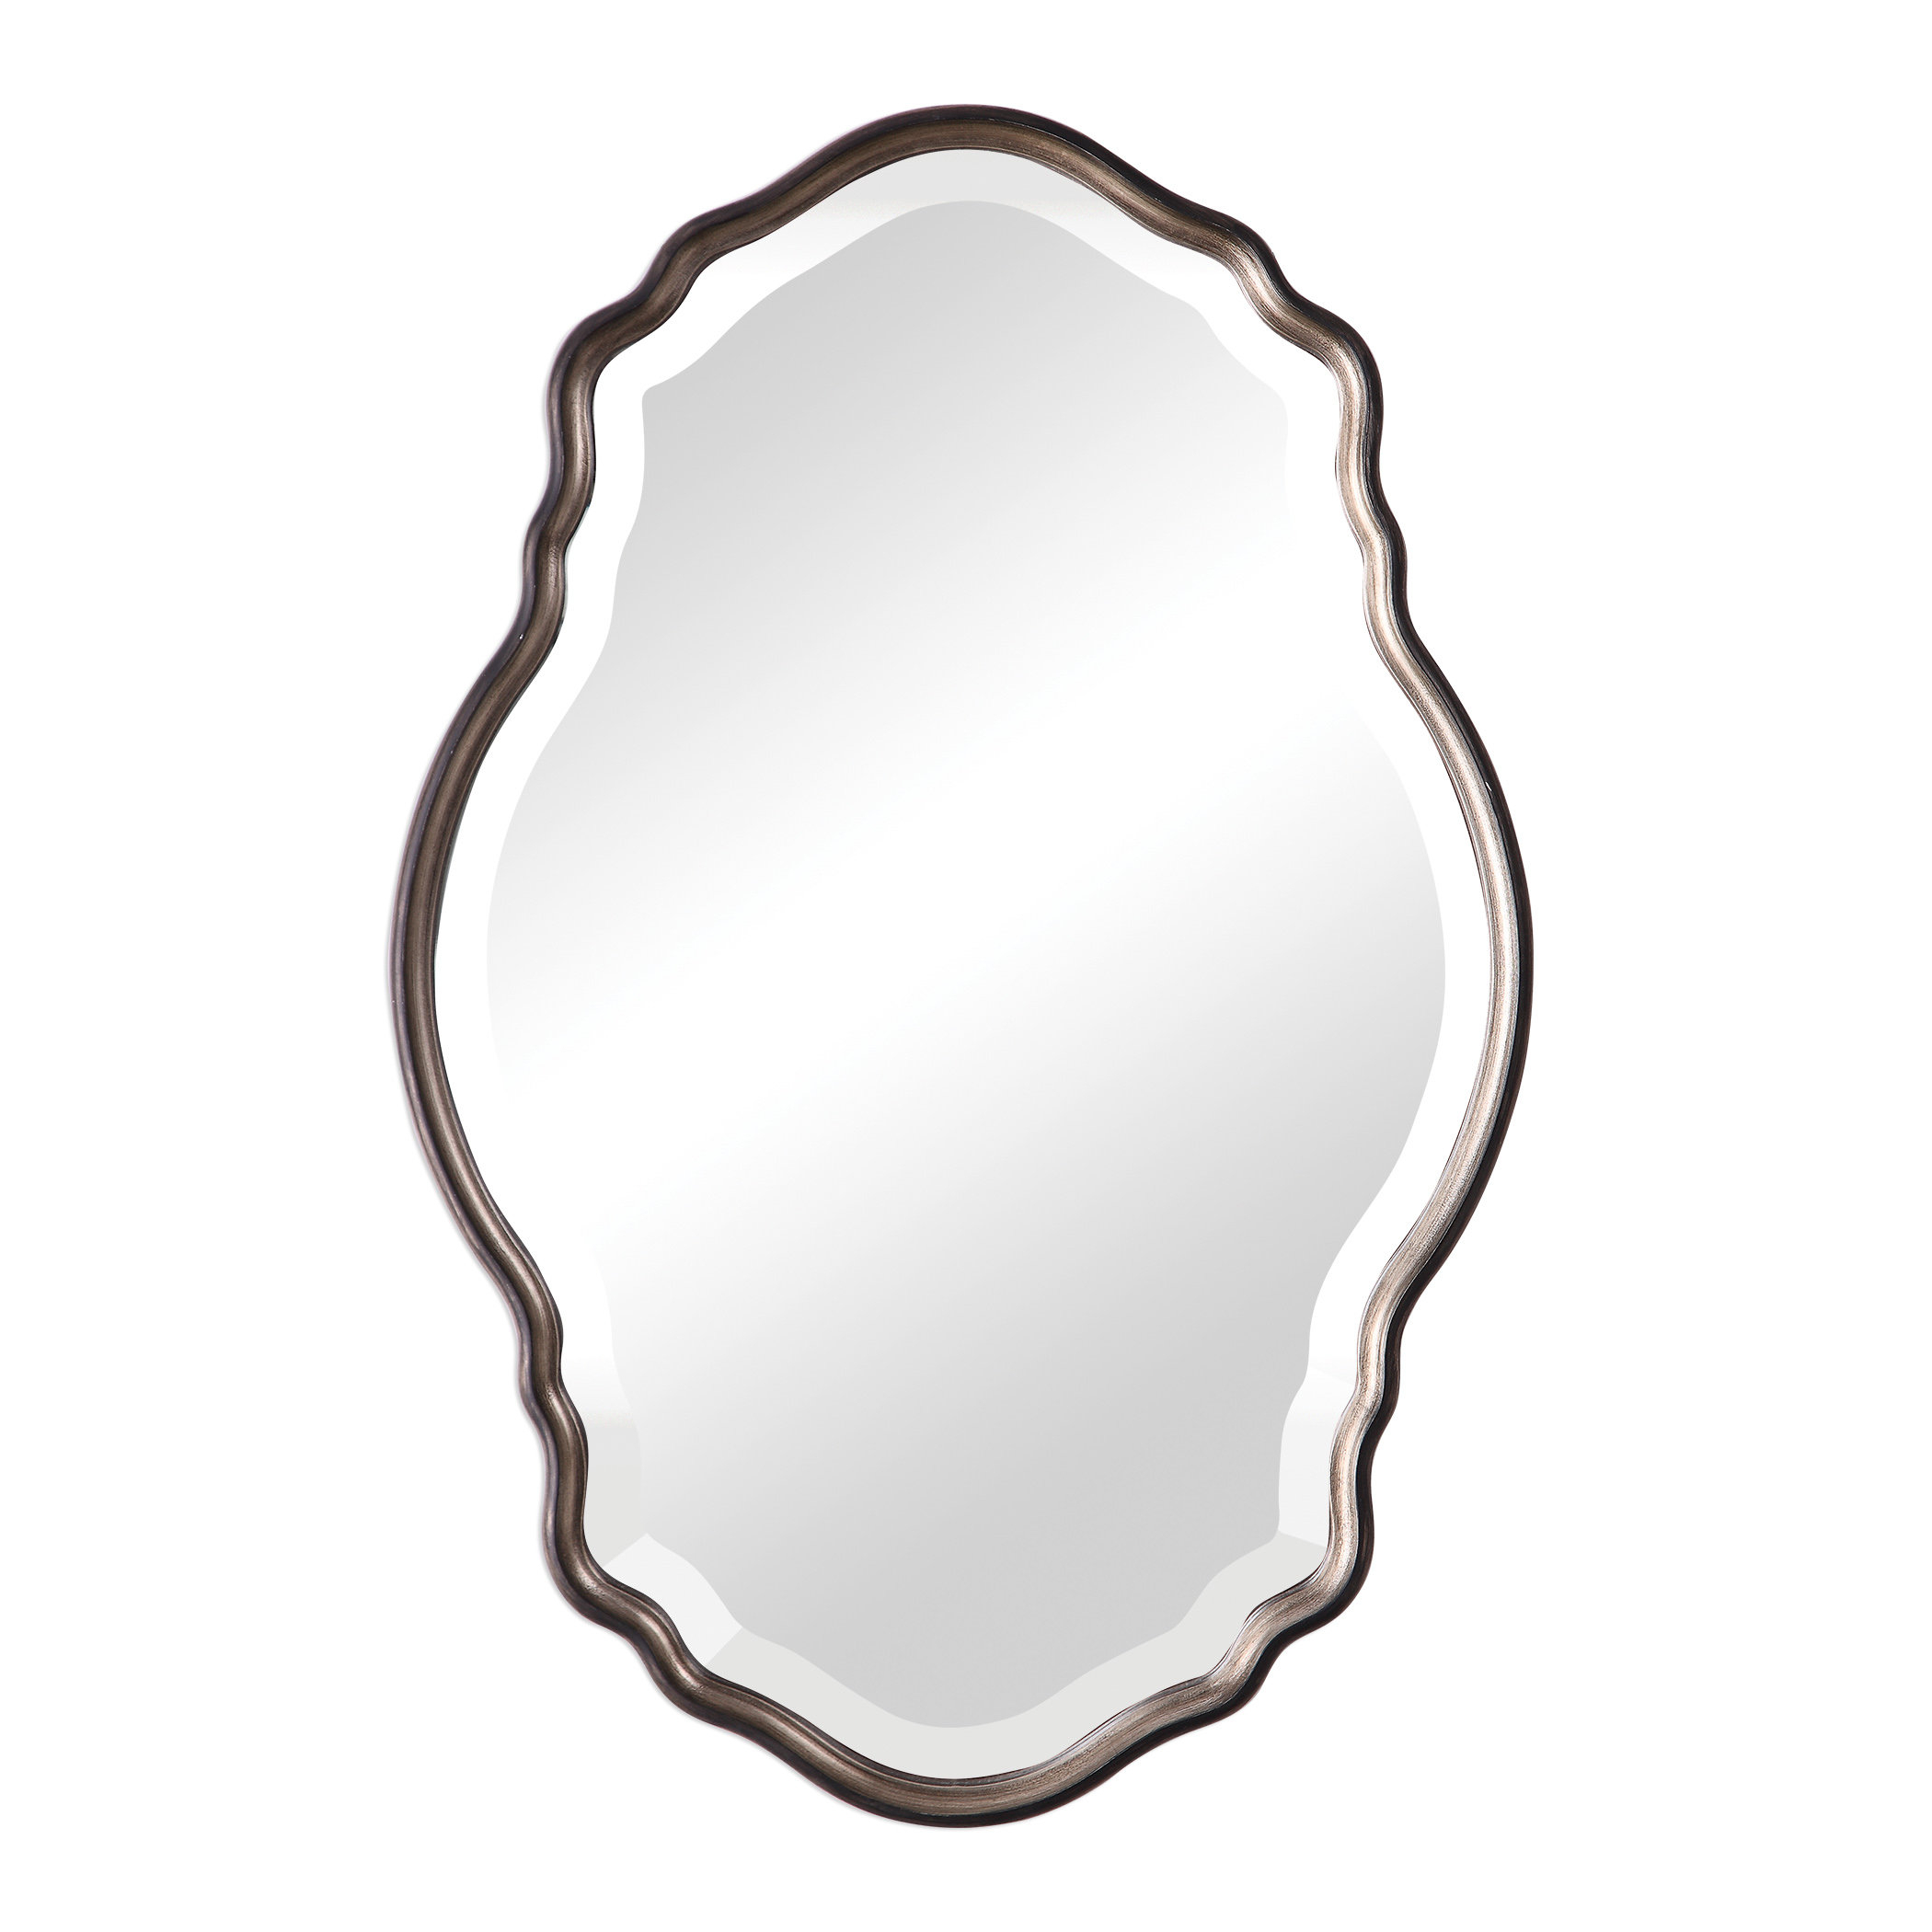 Christner Modern & Contemporary Beveled Wall Mirror Intended For Guidinha Modern & Contemporary Accent Mirrors (Image 5 of 20)